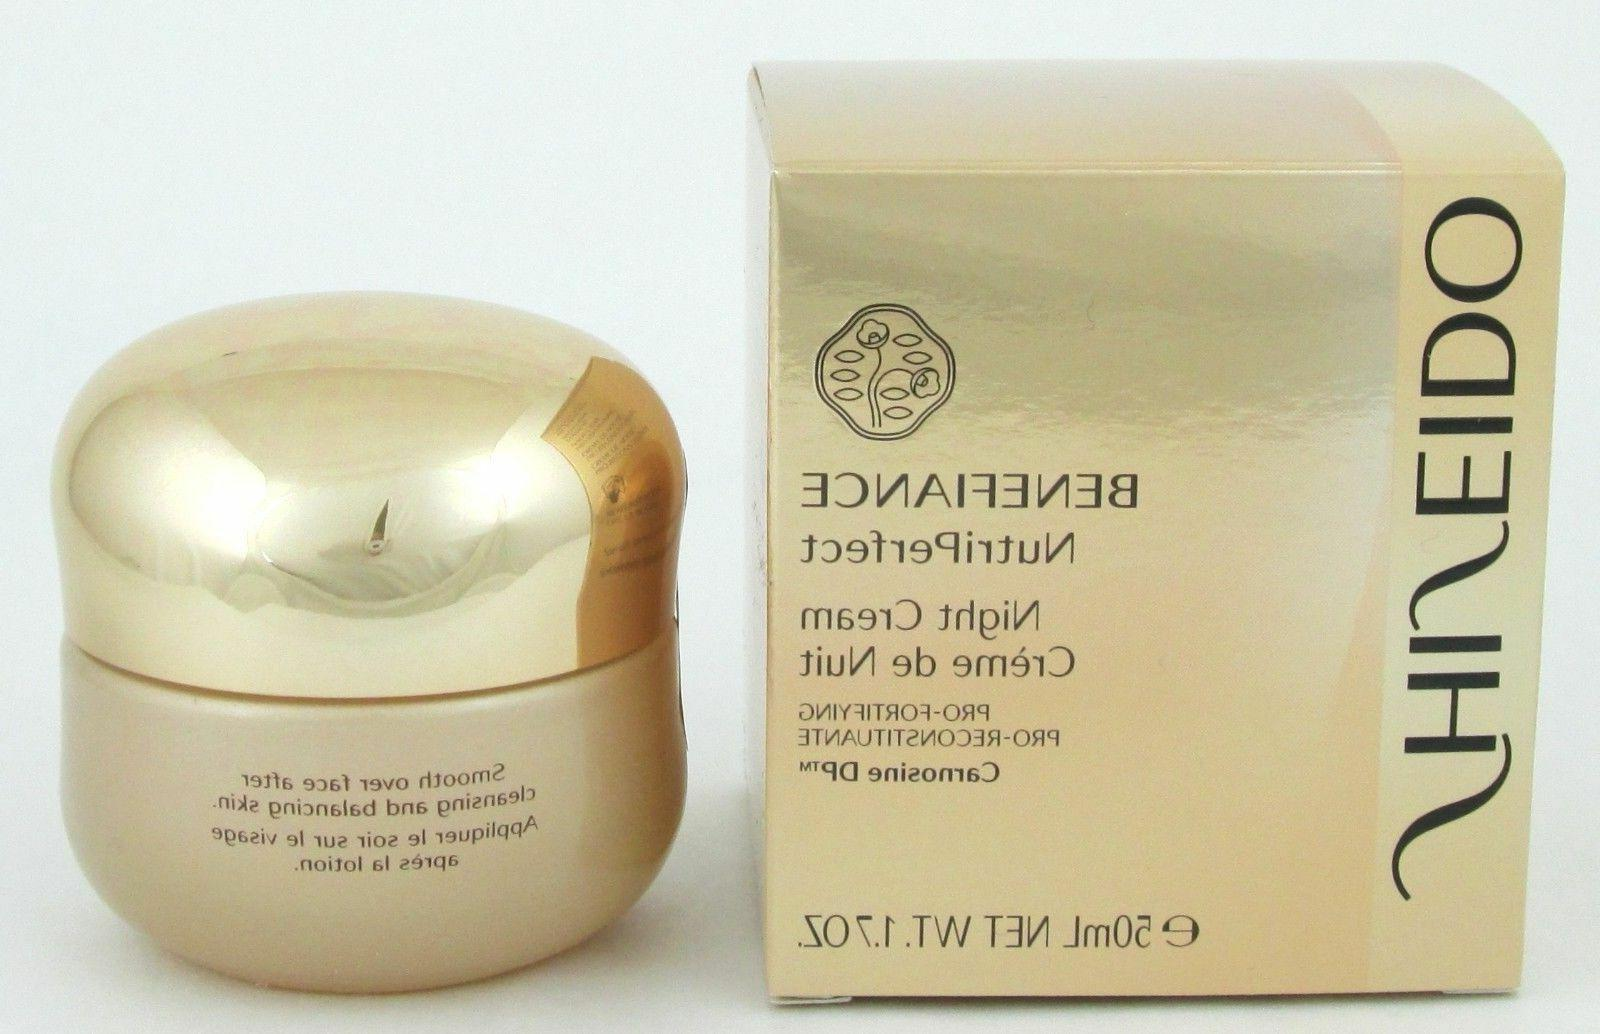 Shiseido NutriPerfect Cream 1.7